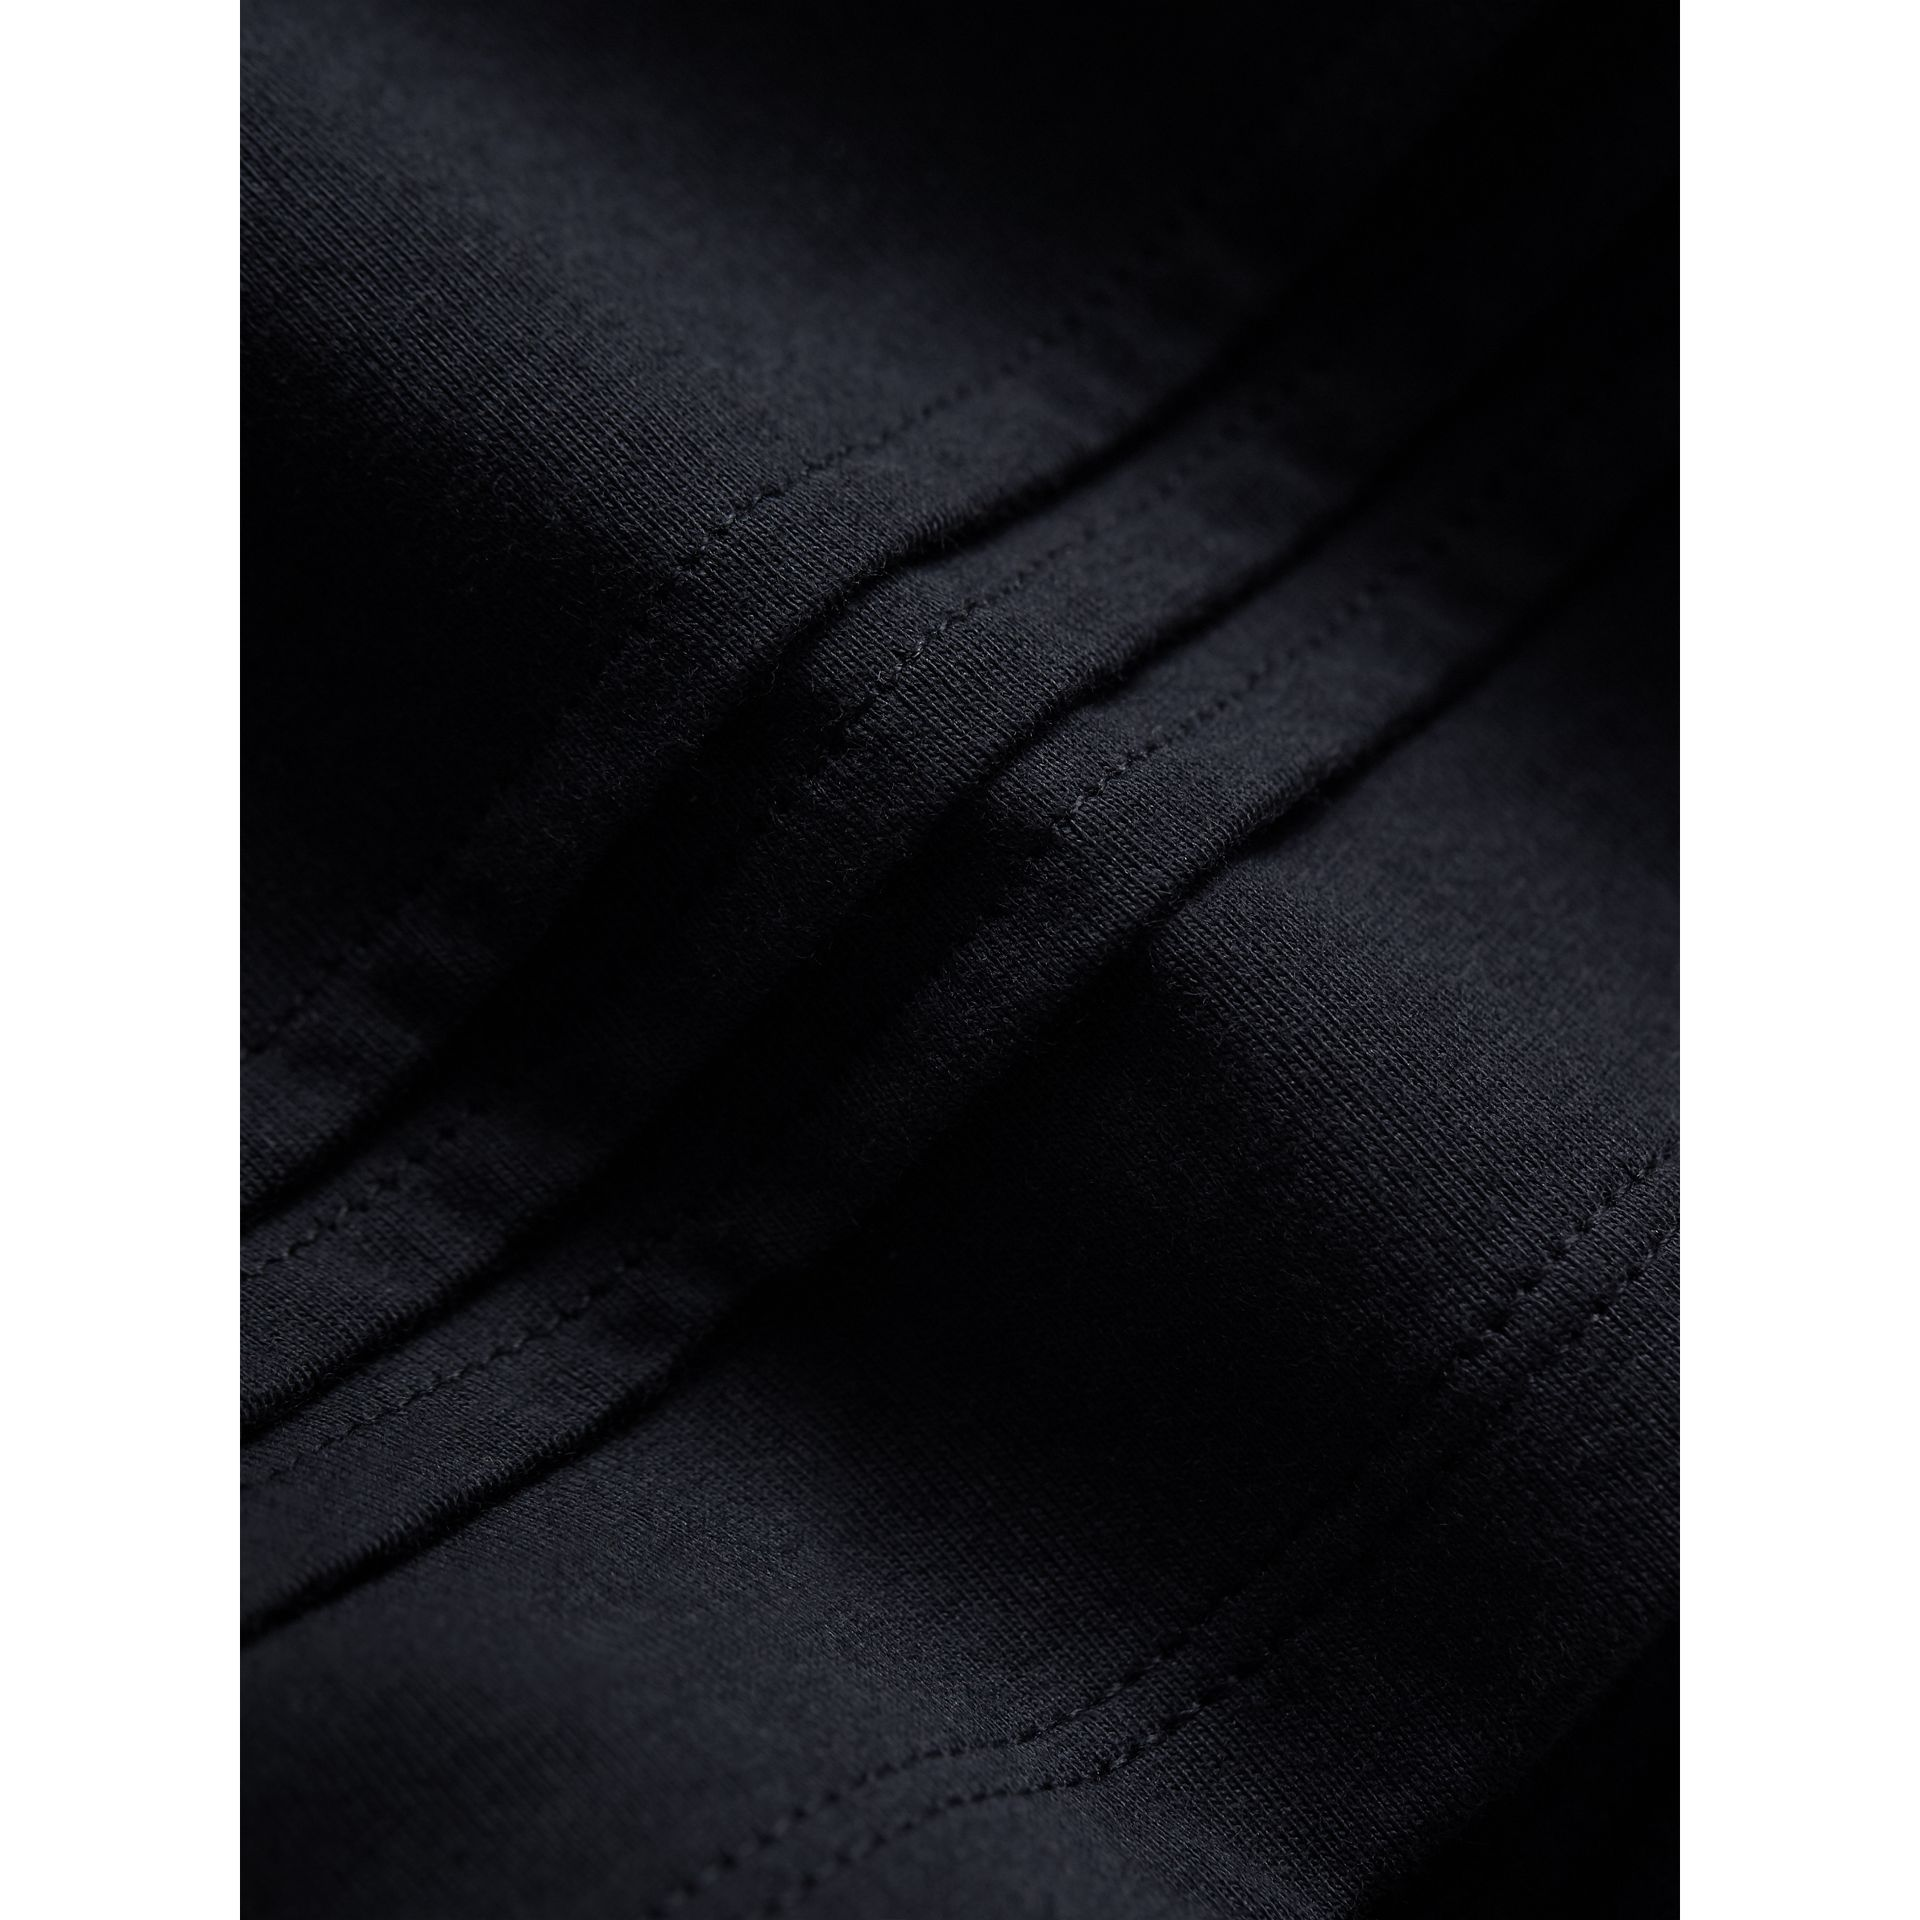 Pleat and Check Detail Cotton Top in Navy | Burberry Singapore - gallery image 1